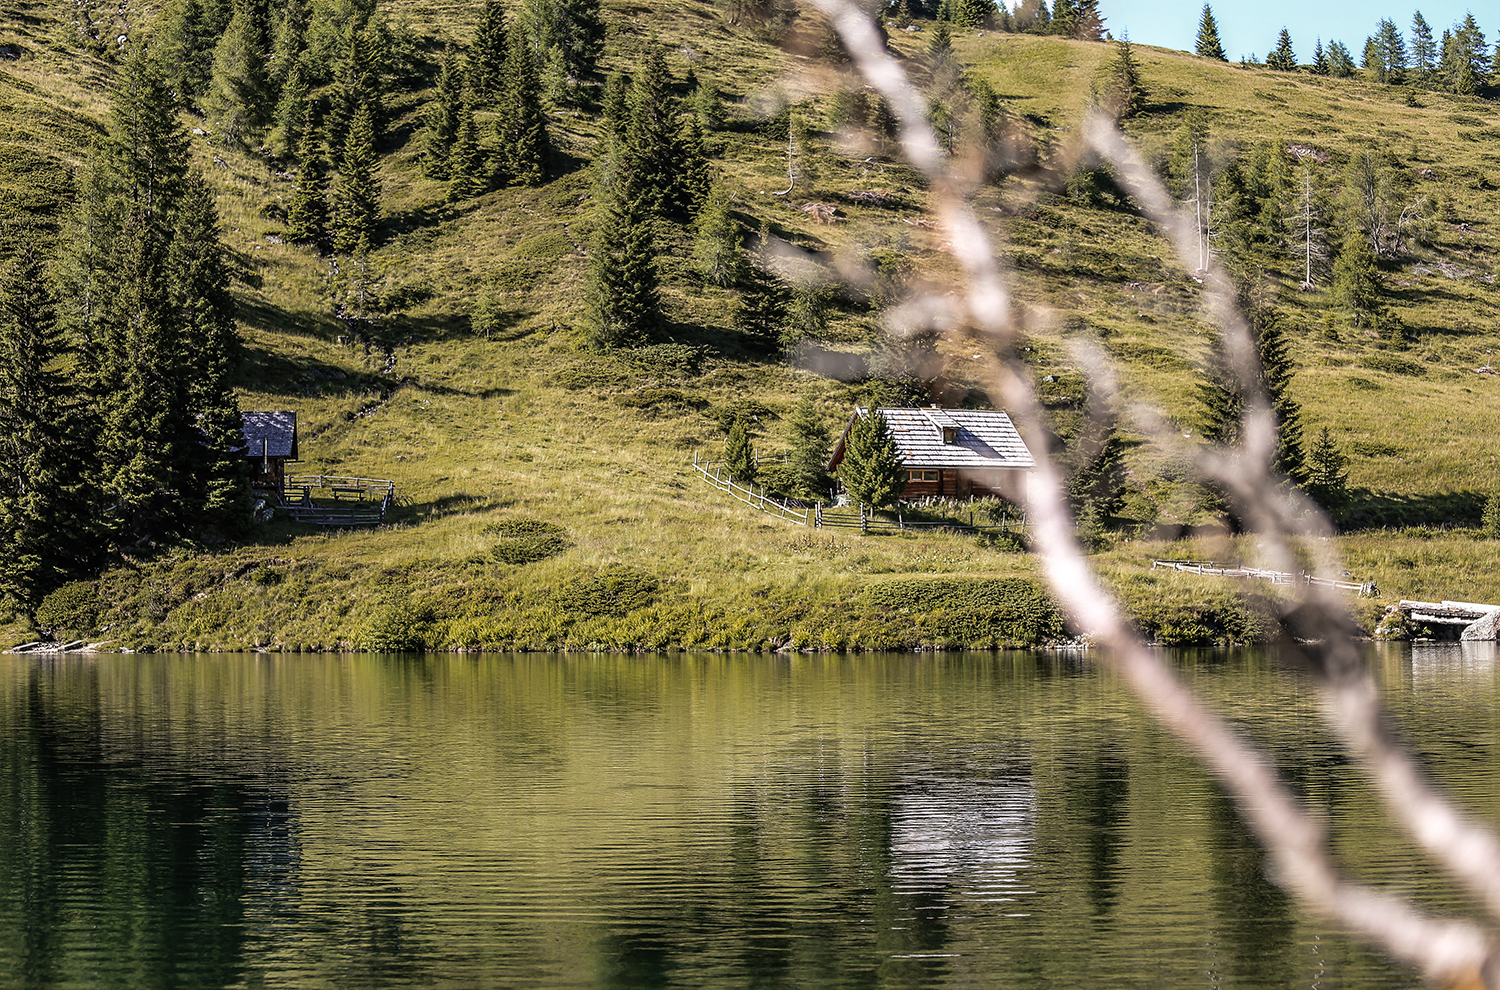 Alpine hut on the mountain lake - holiday in the Austrian mountains